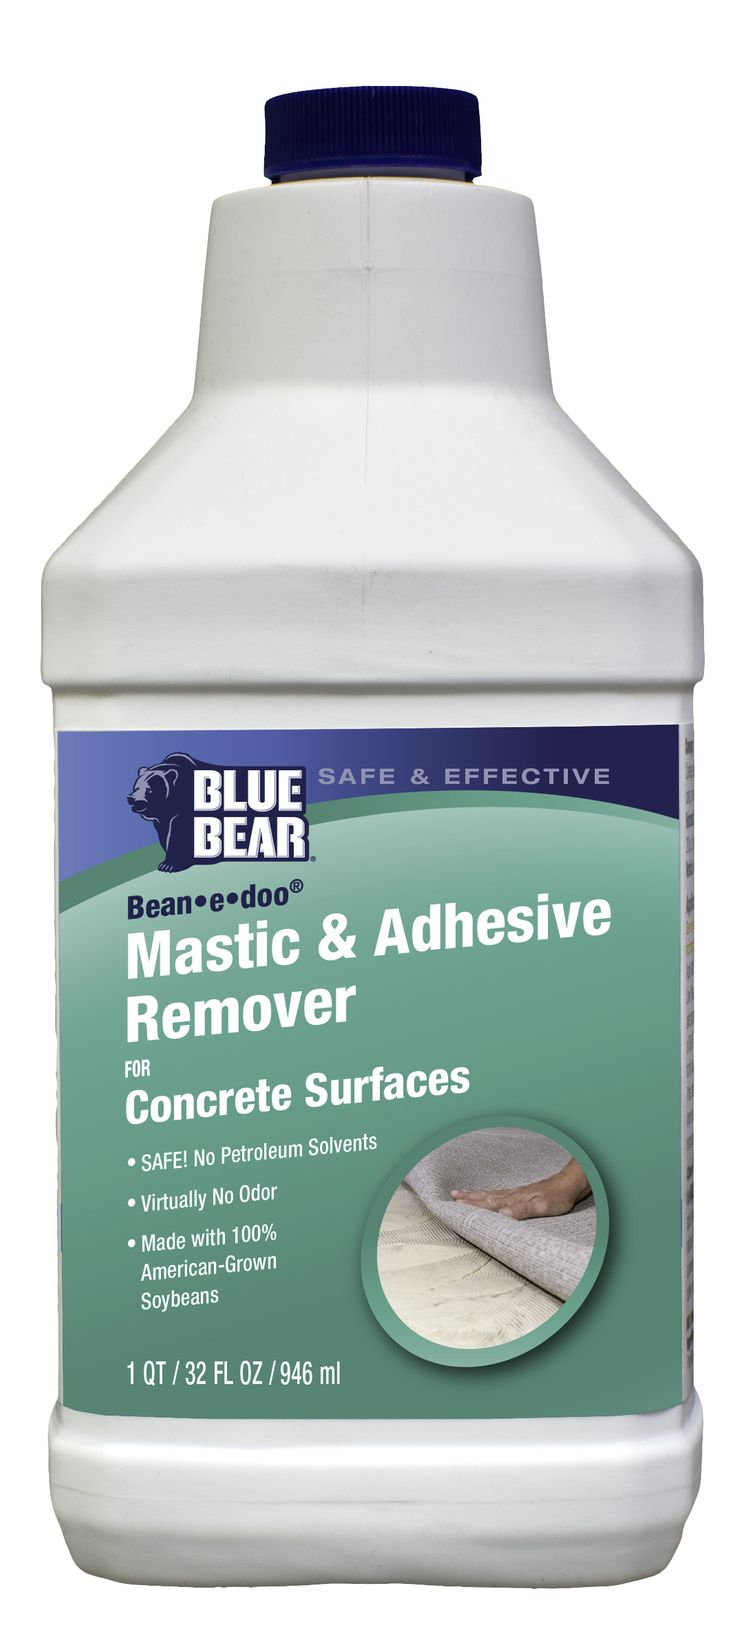 Blue Bear Bean E Doo® Mastic U0026 Adhesive Remover For Concrete Surfaces